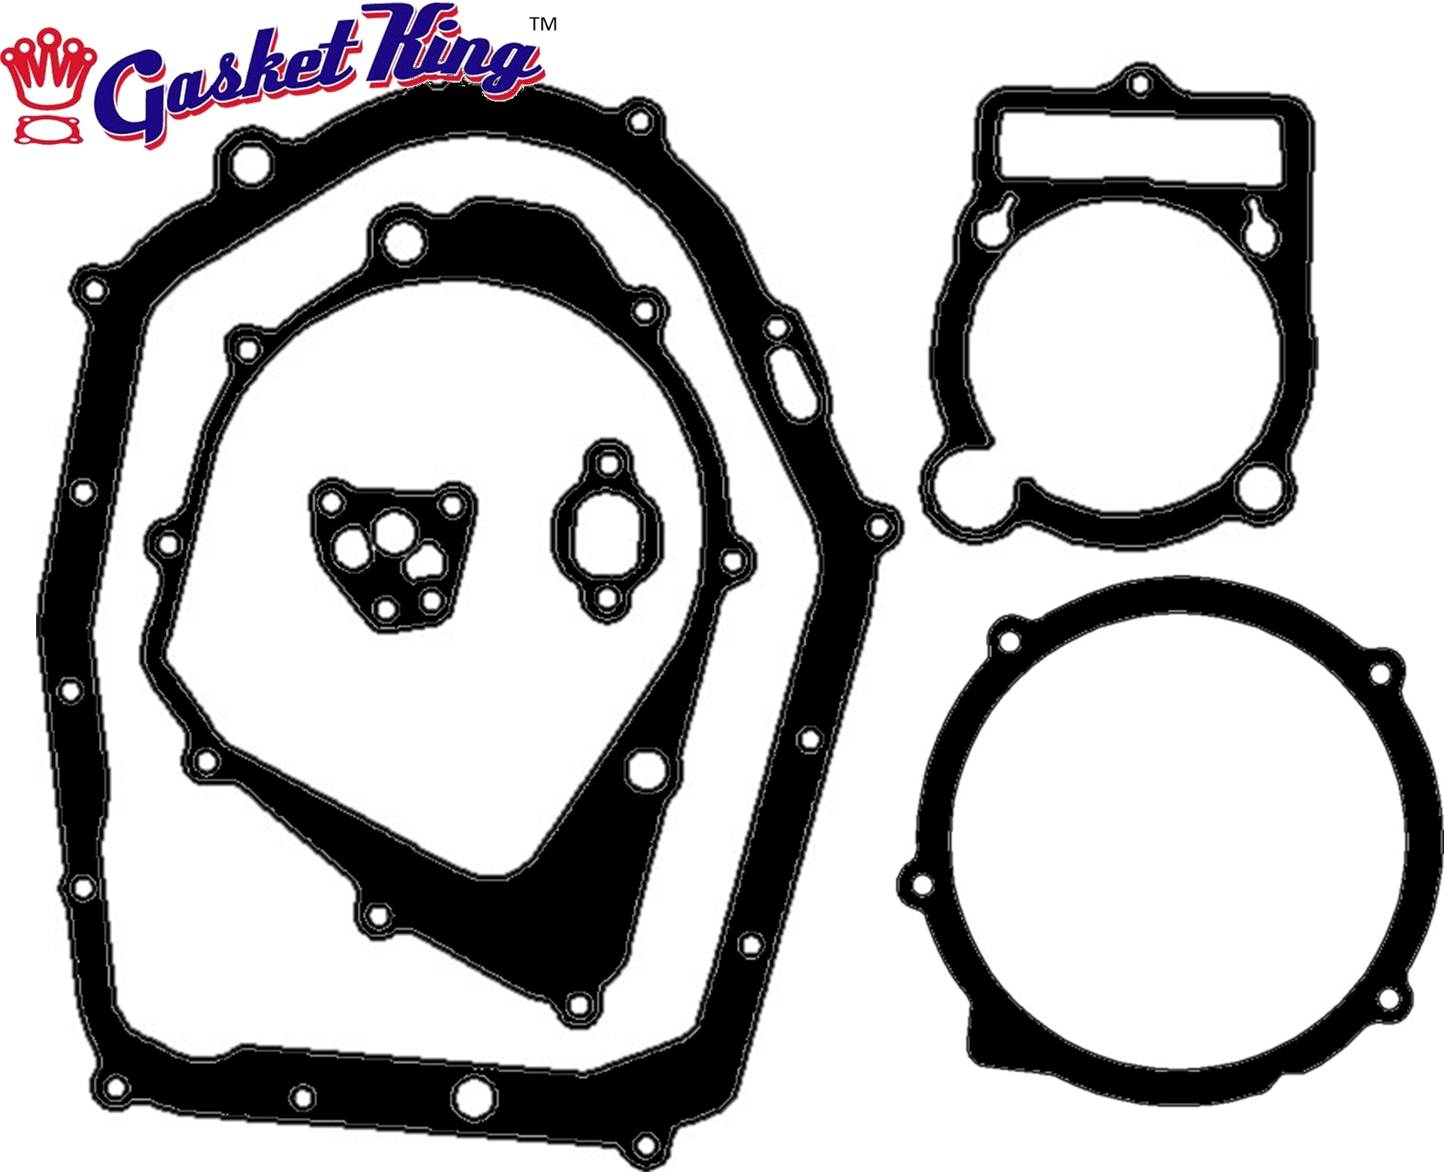 Yamaha 350x Warrior Gaskets 1987 04 on Honda Motorcycle Gaskets